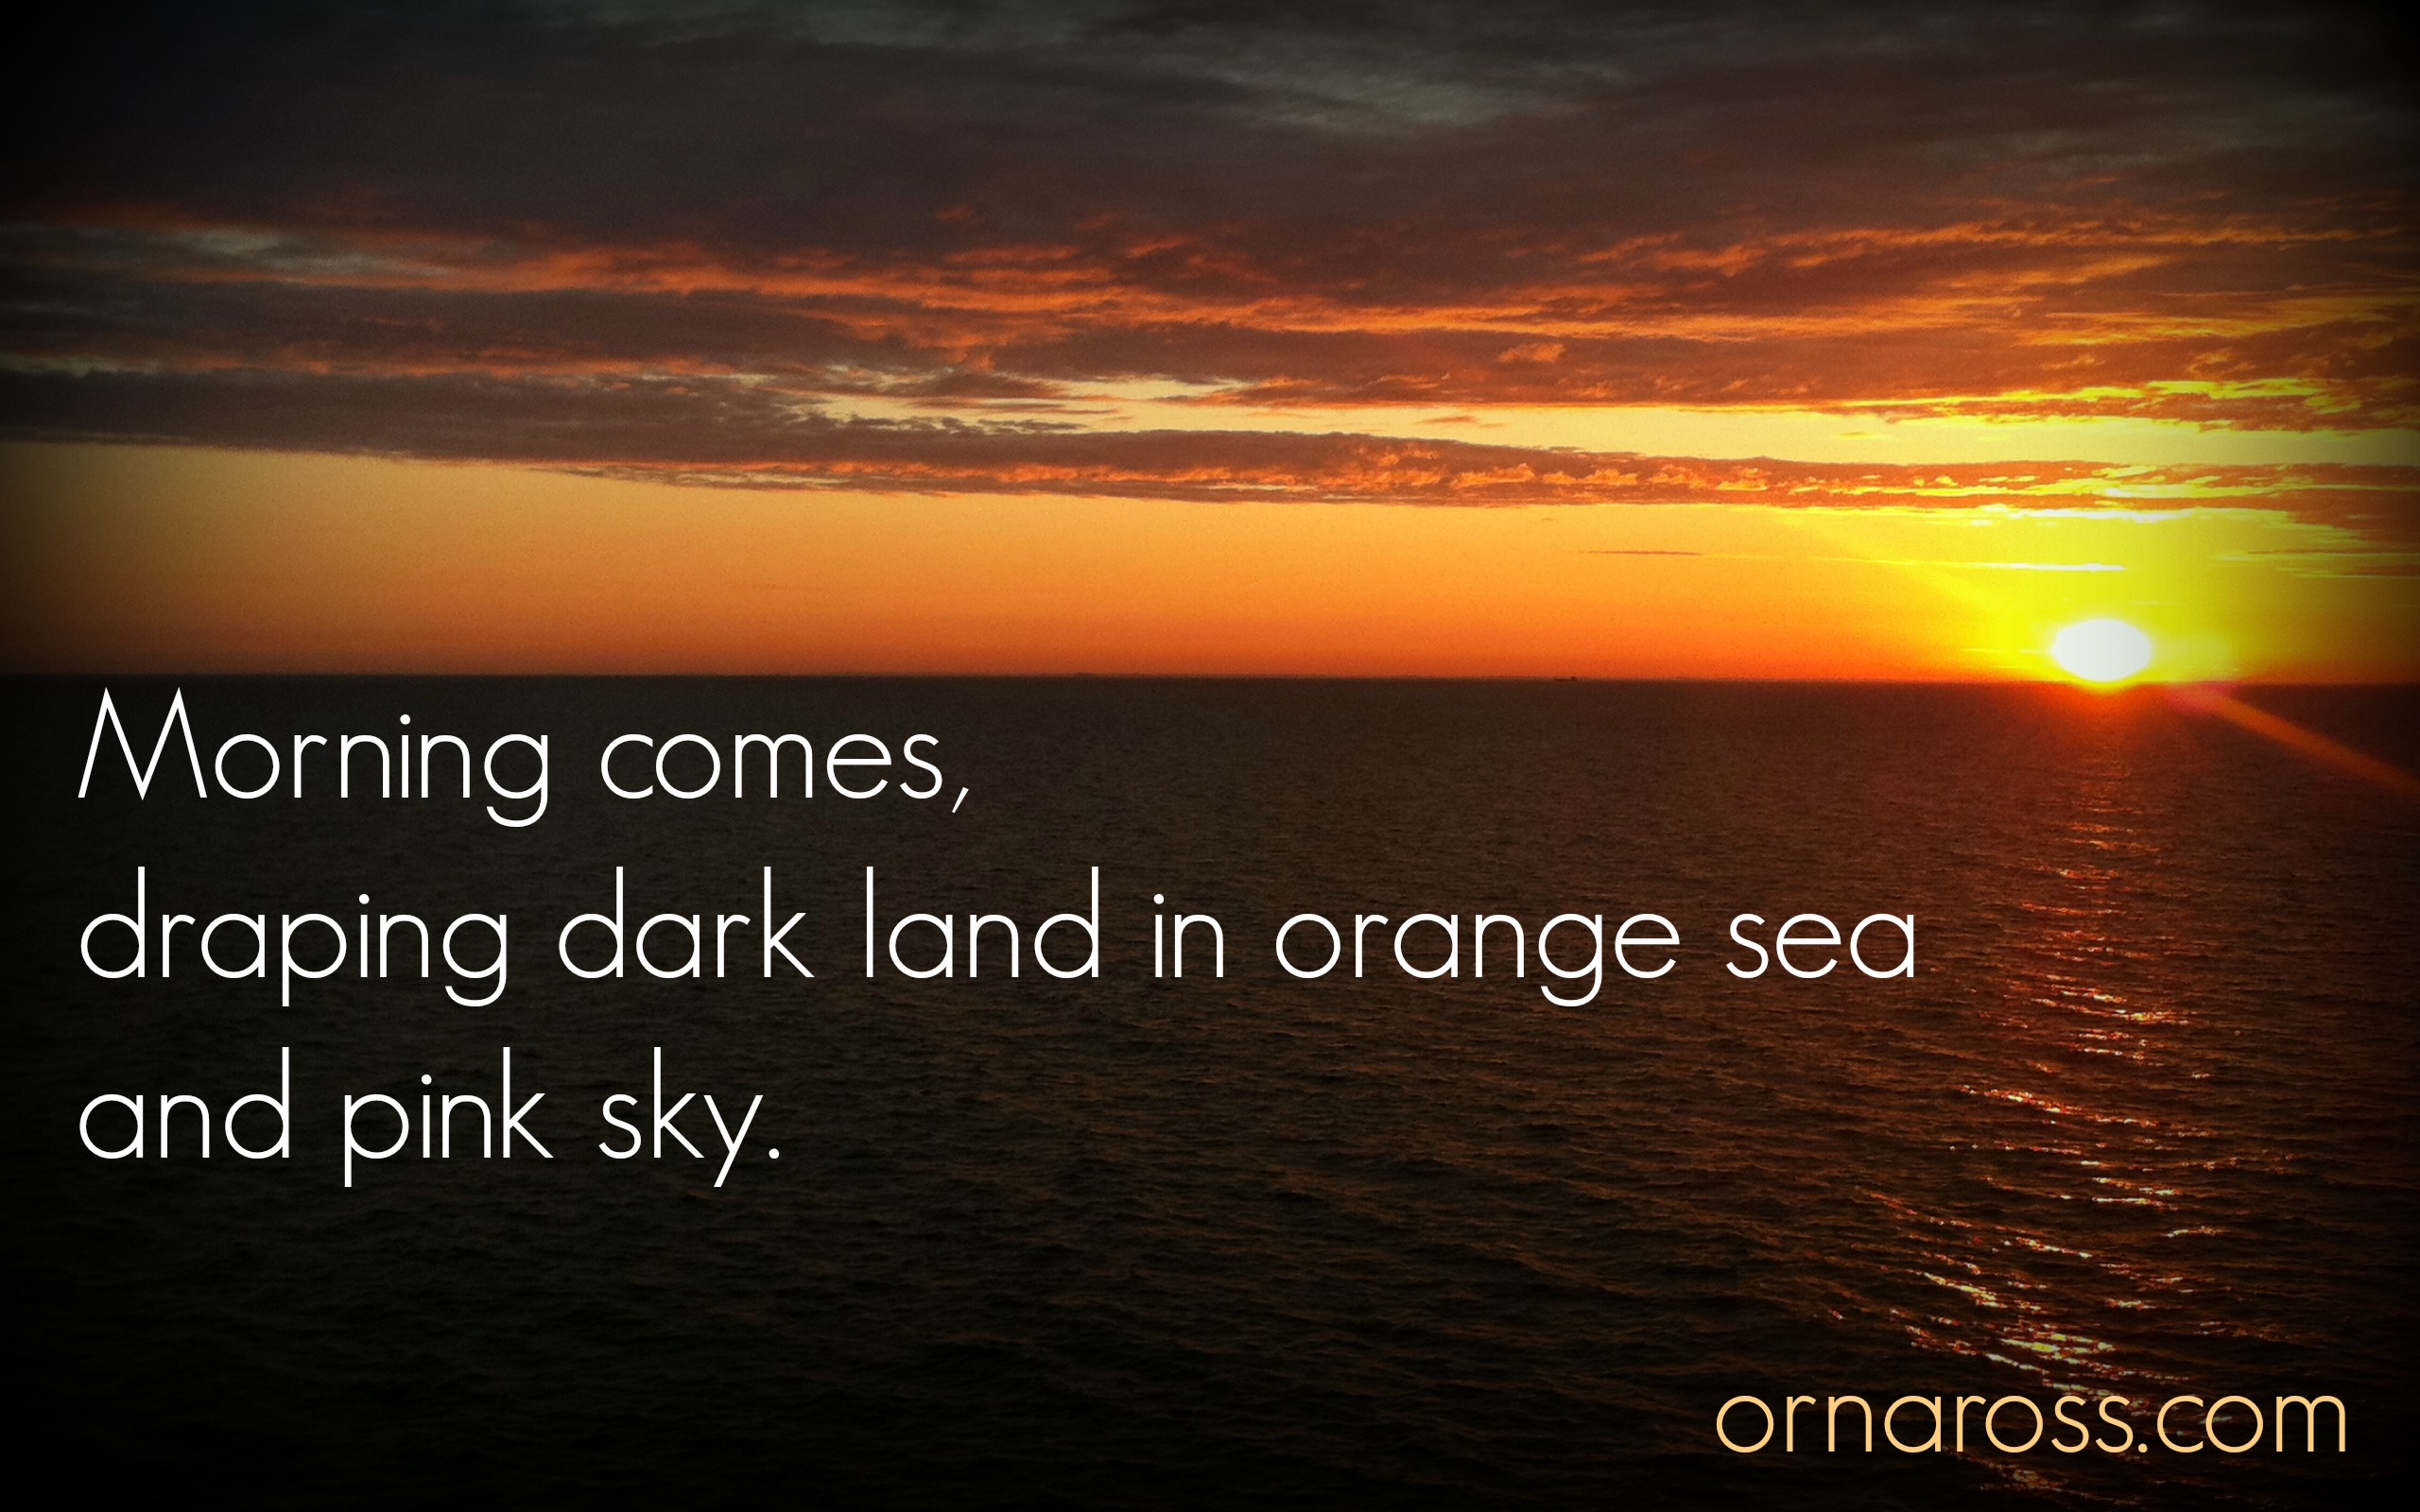 Morning comes haiku